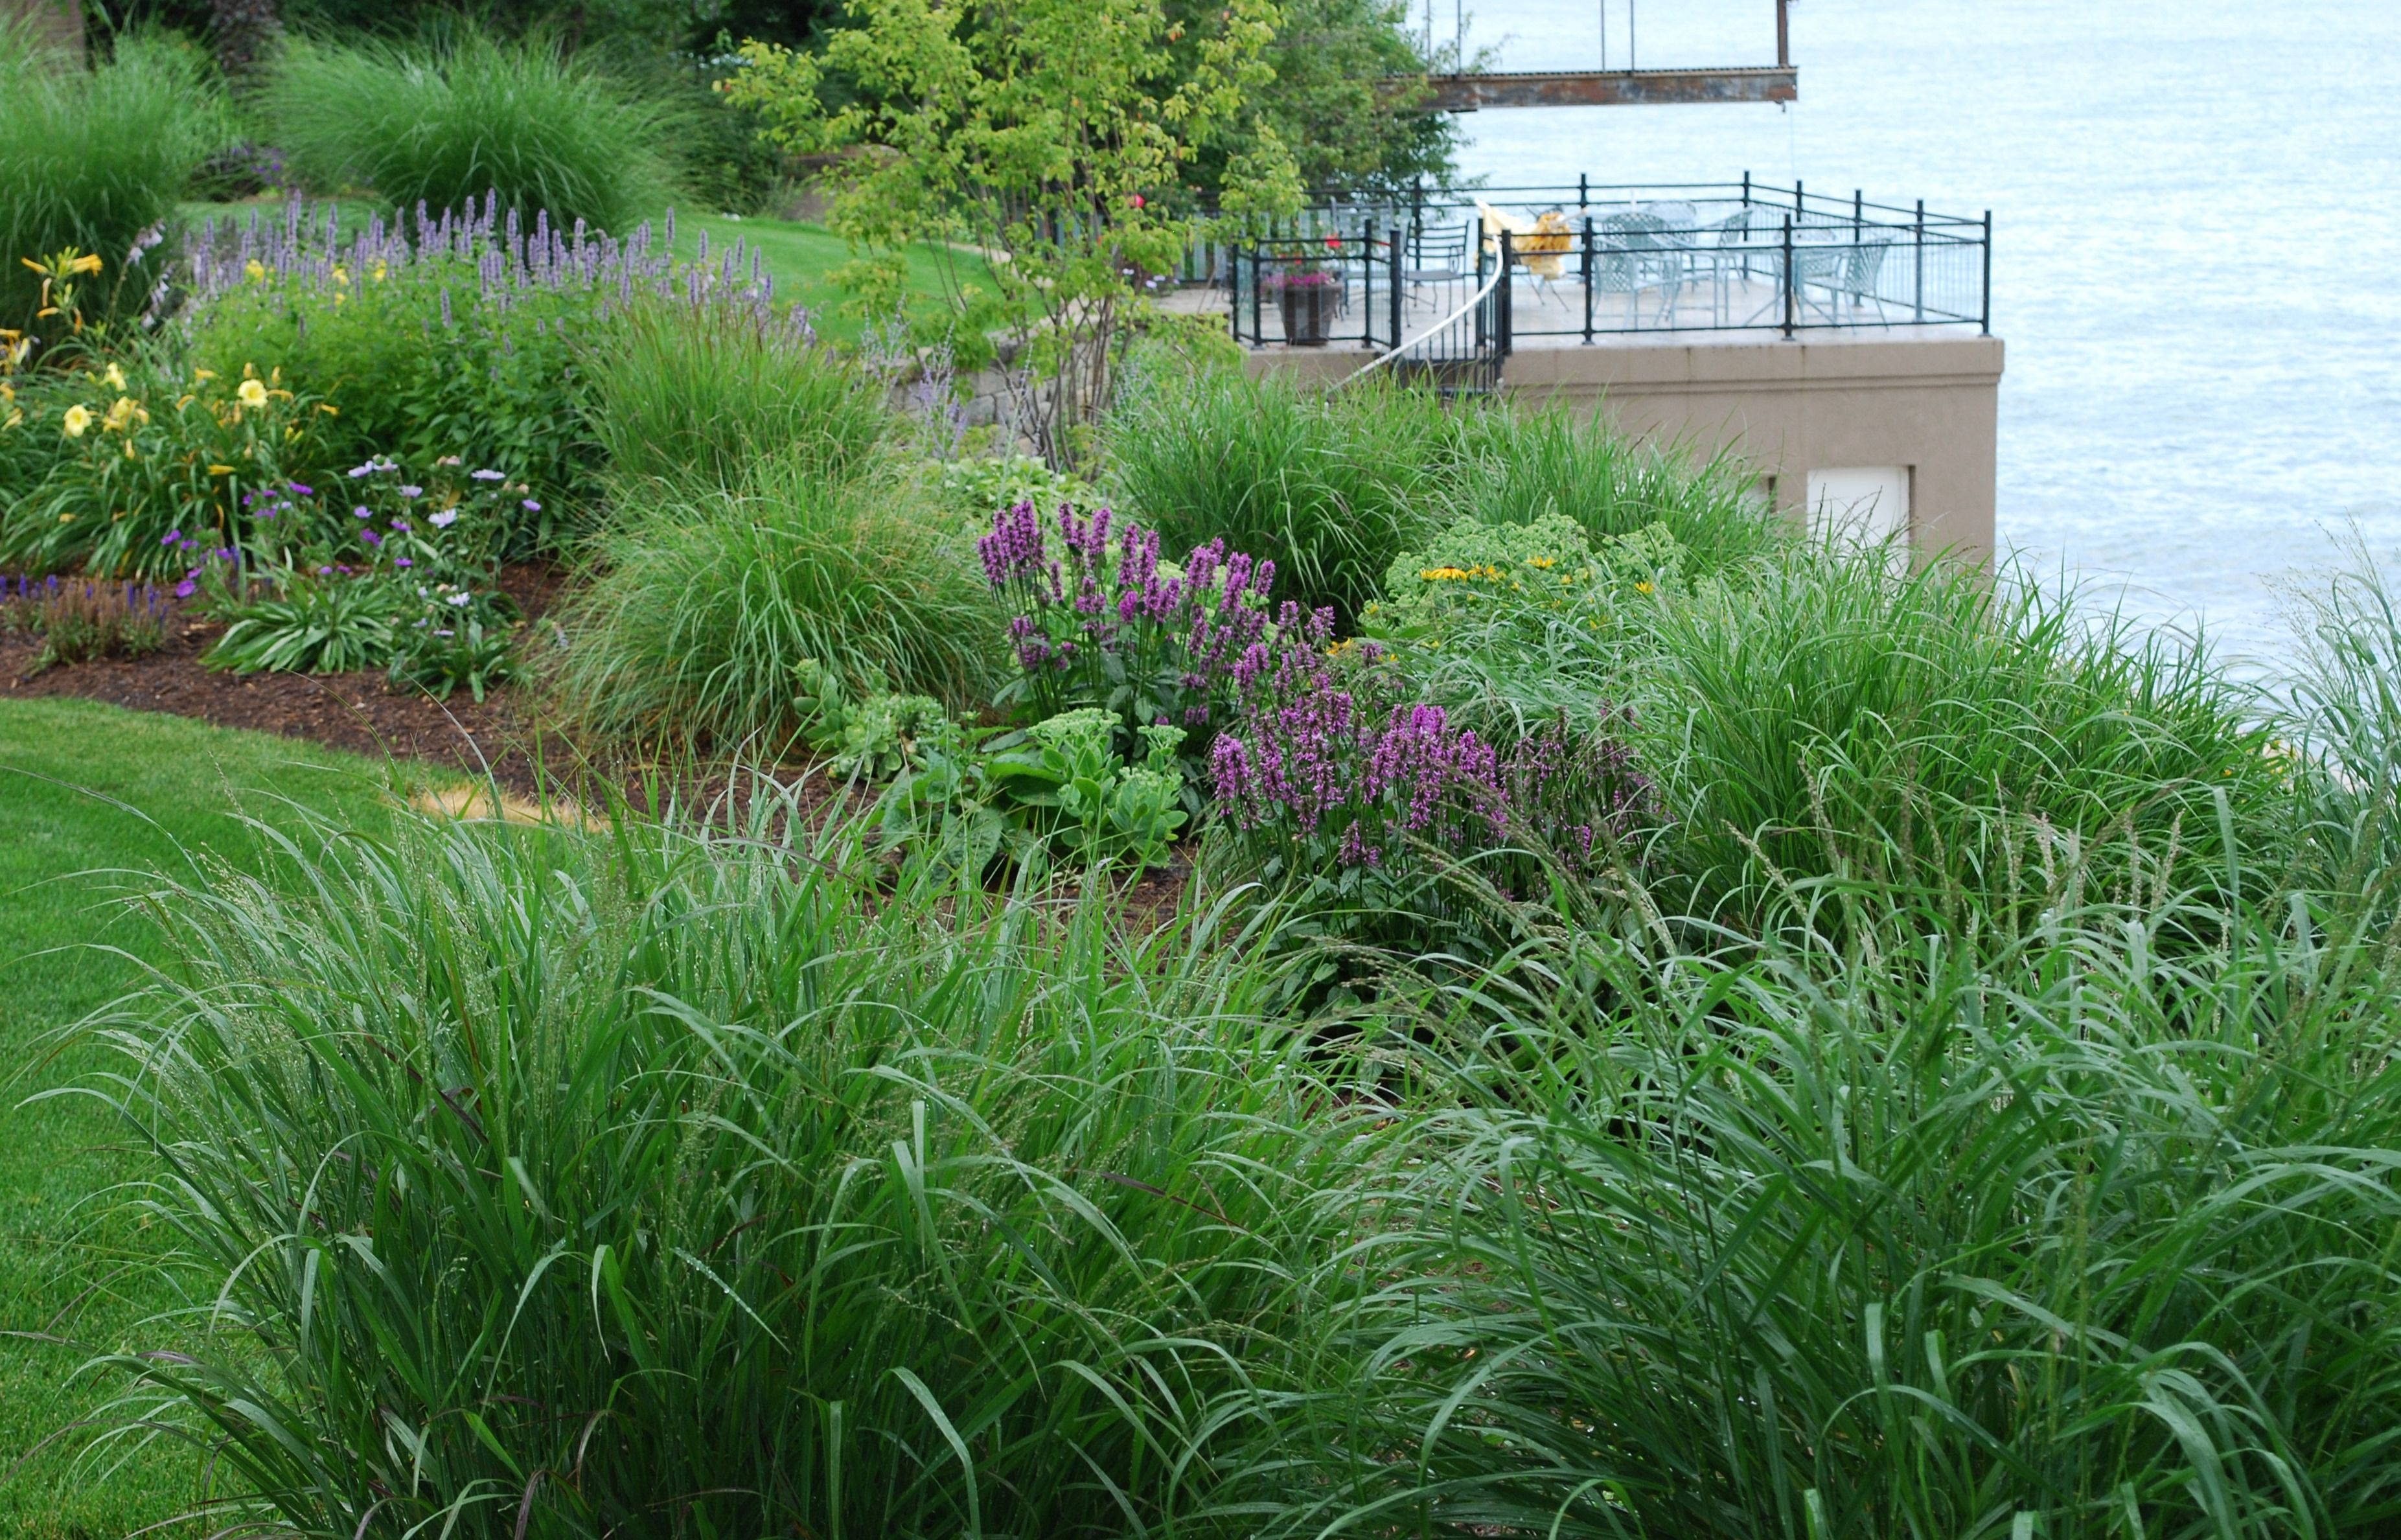 Switchgrass, 'Shenandoah' ,a cultivar of our native switchgrass, sways in the lake breezes.